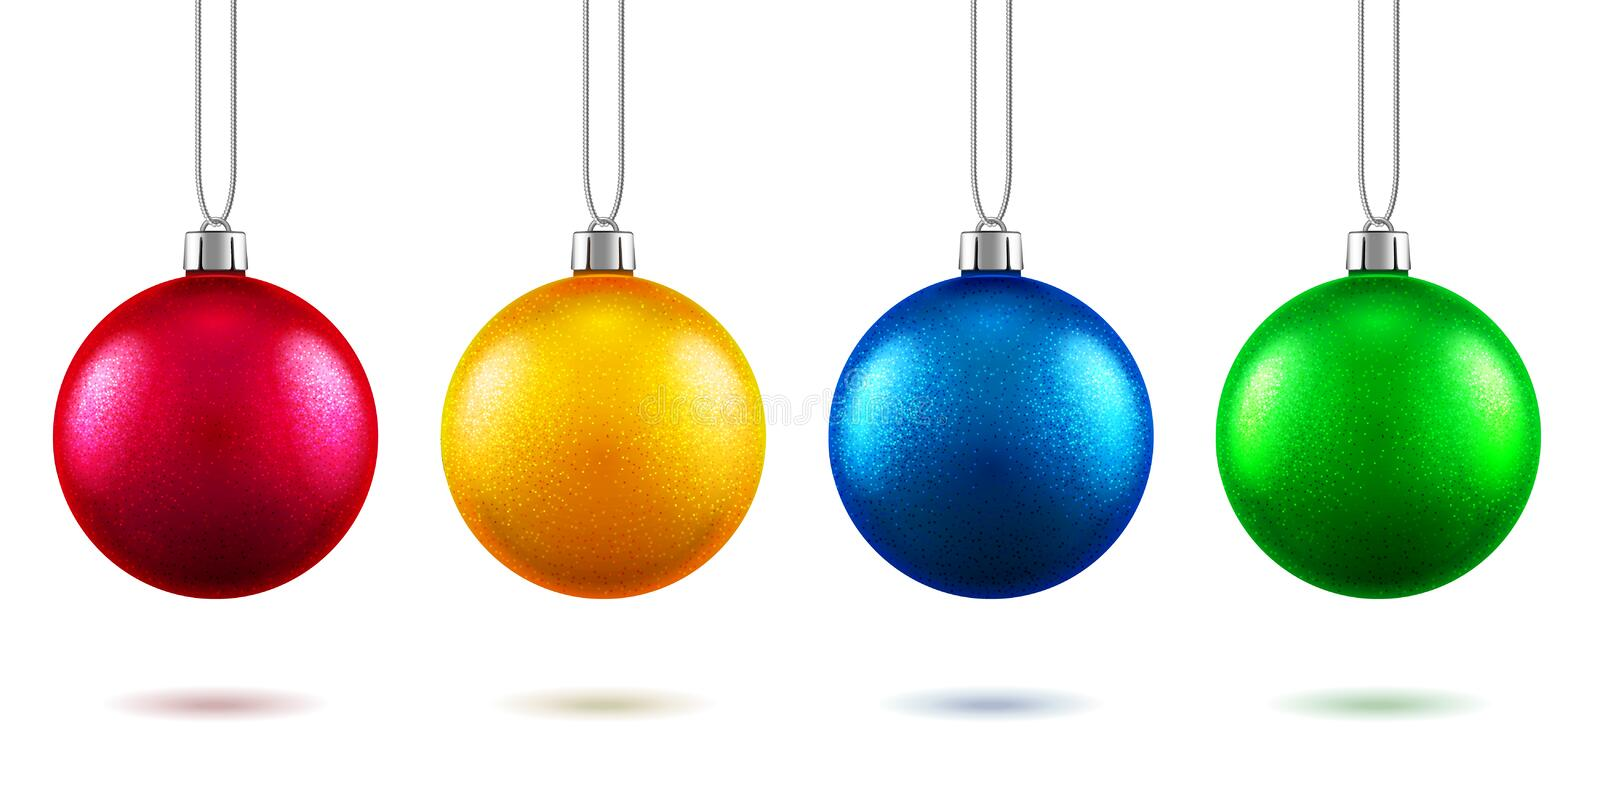 2019 new year toys or christmas baubles vector illustration